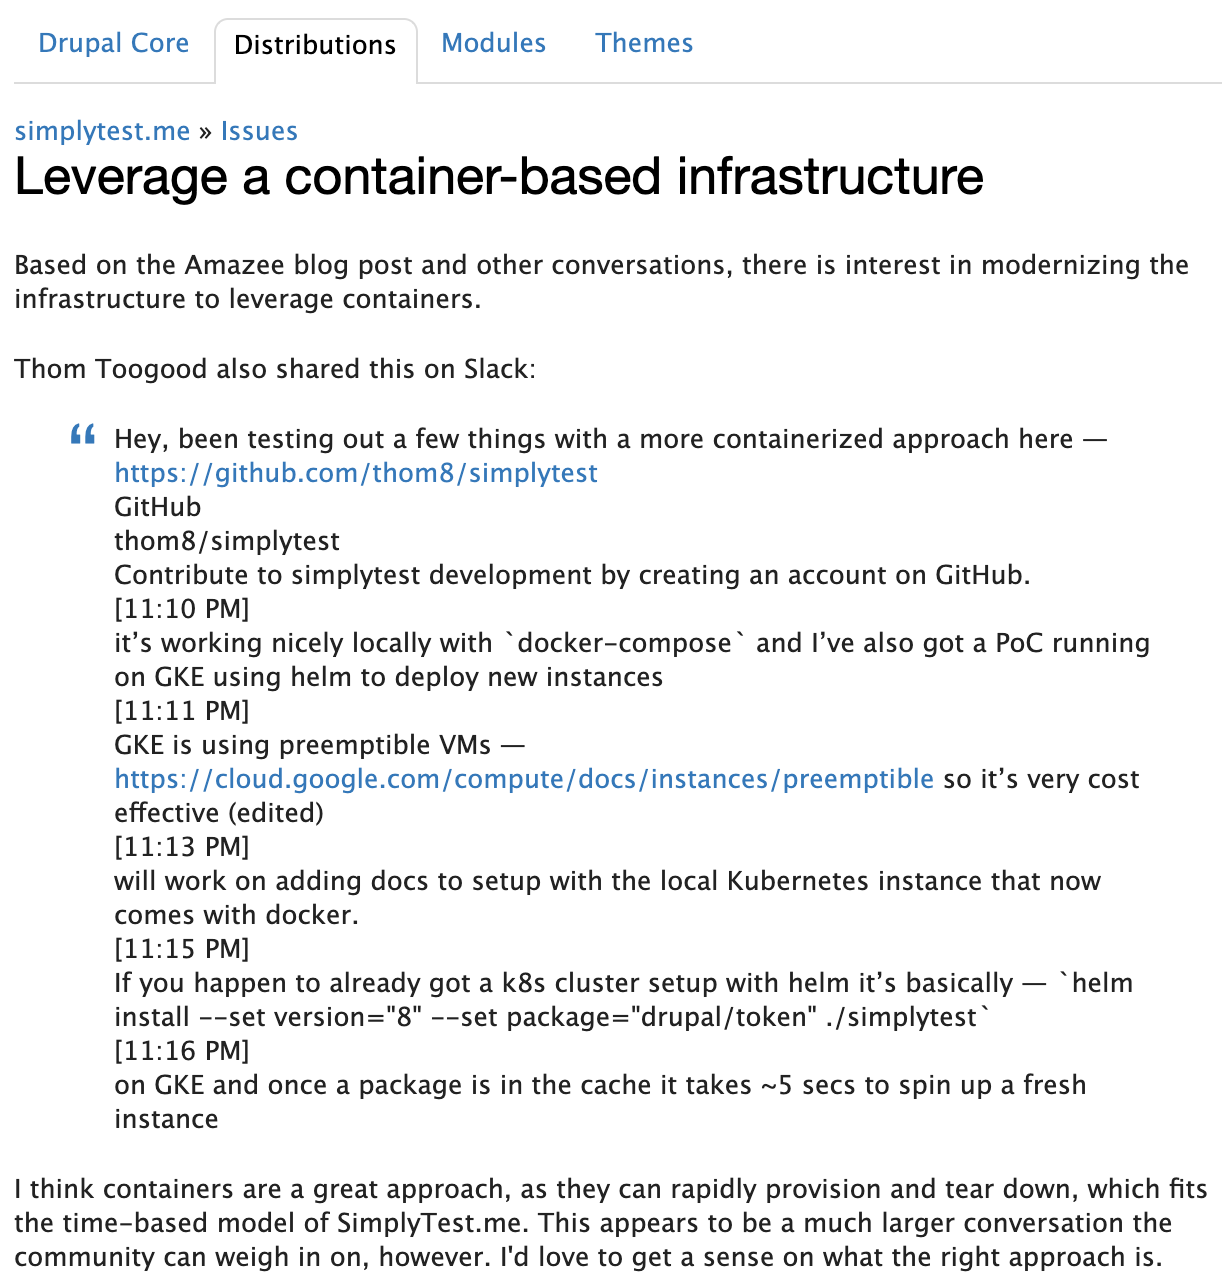 Screenshot of an issue on Drupal.org discussing leveraging a container-based infrastructure for SimplyTest.me's backend